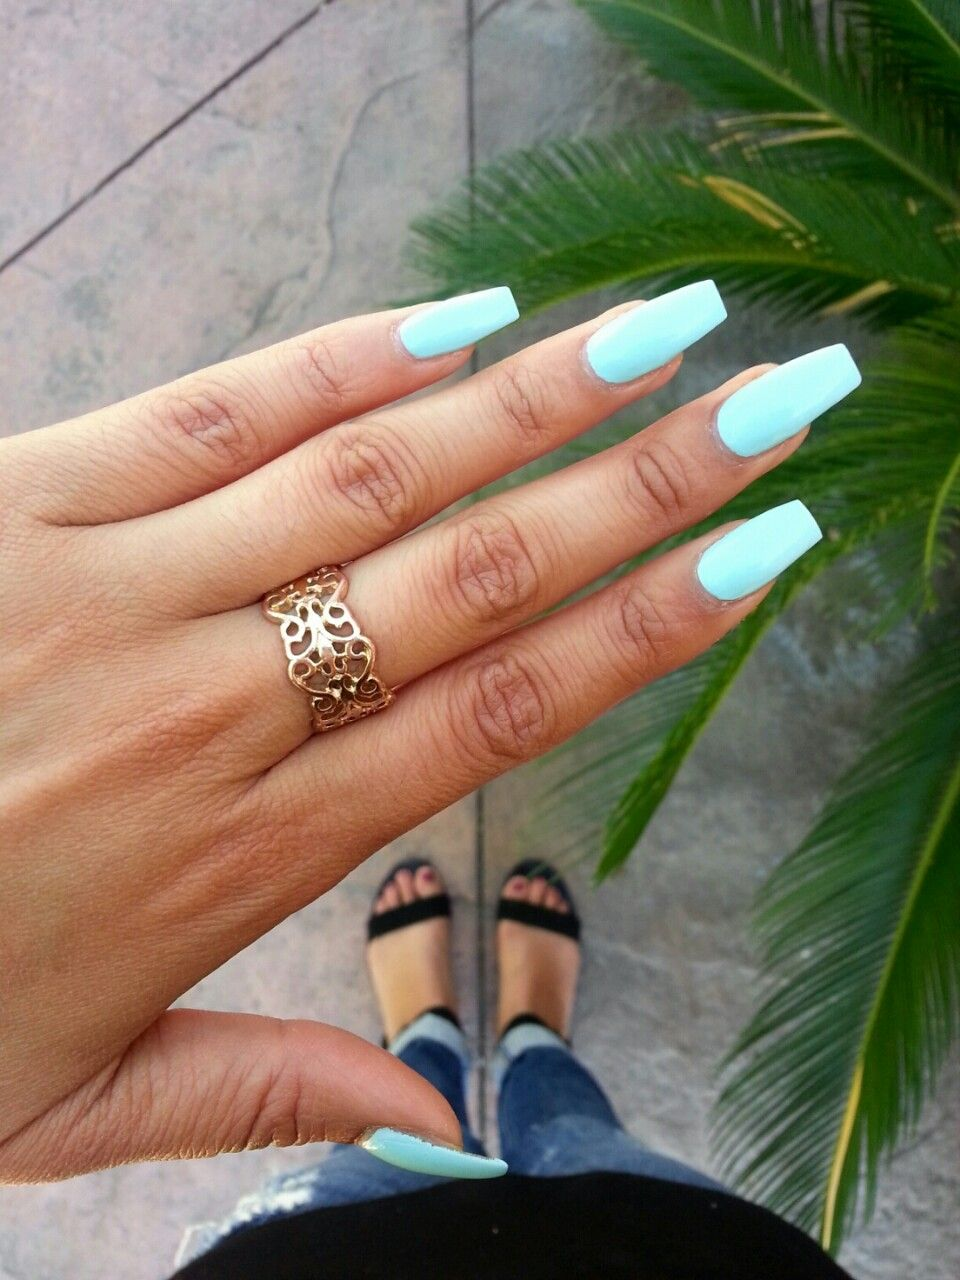 48 Summer Acrylic Coffin Nails Designs 2019 Summer Acrylic Nails